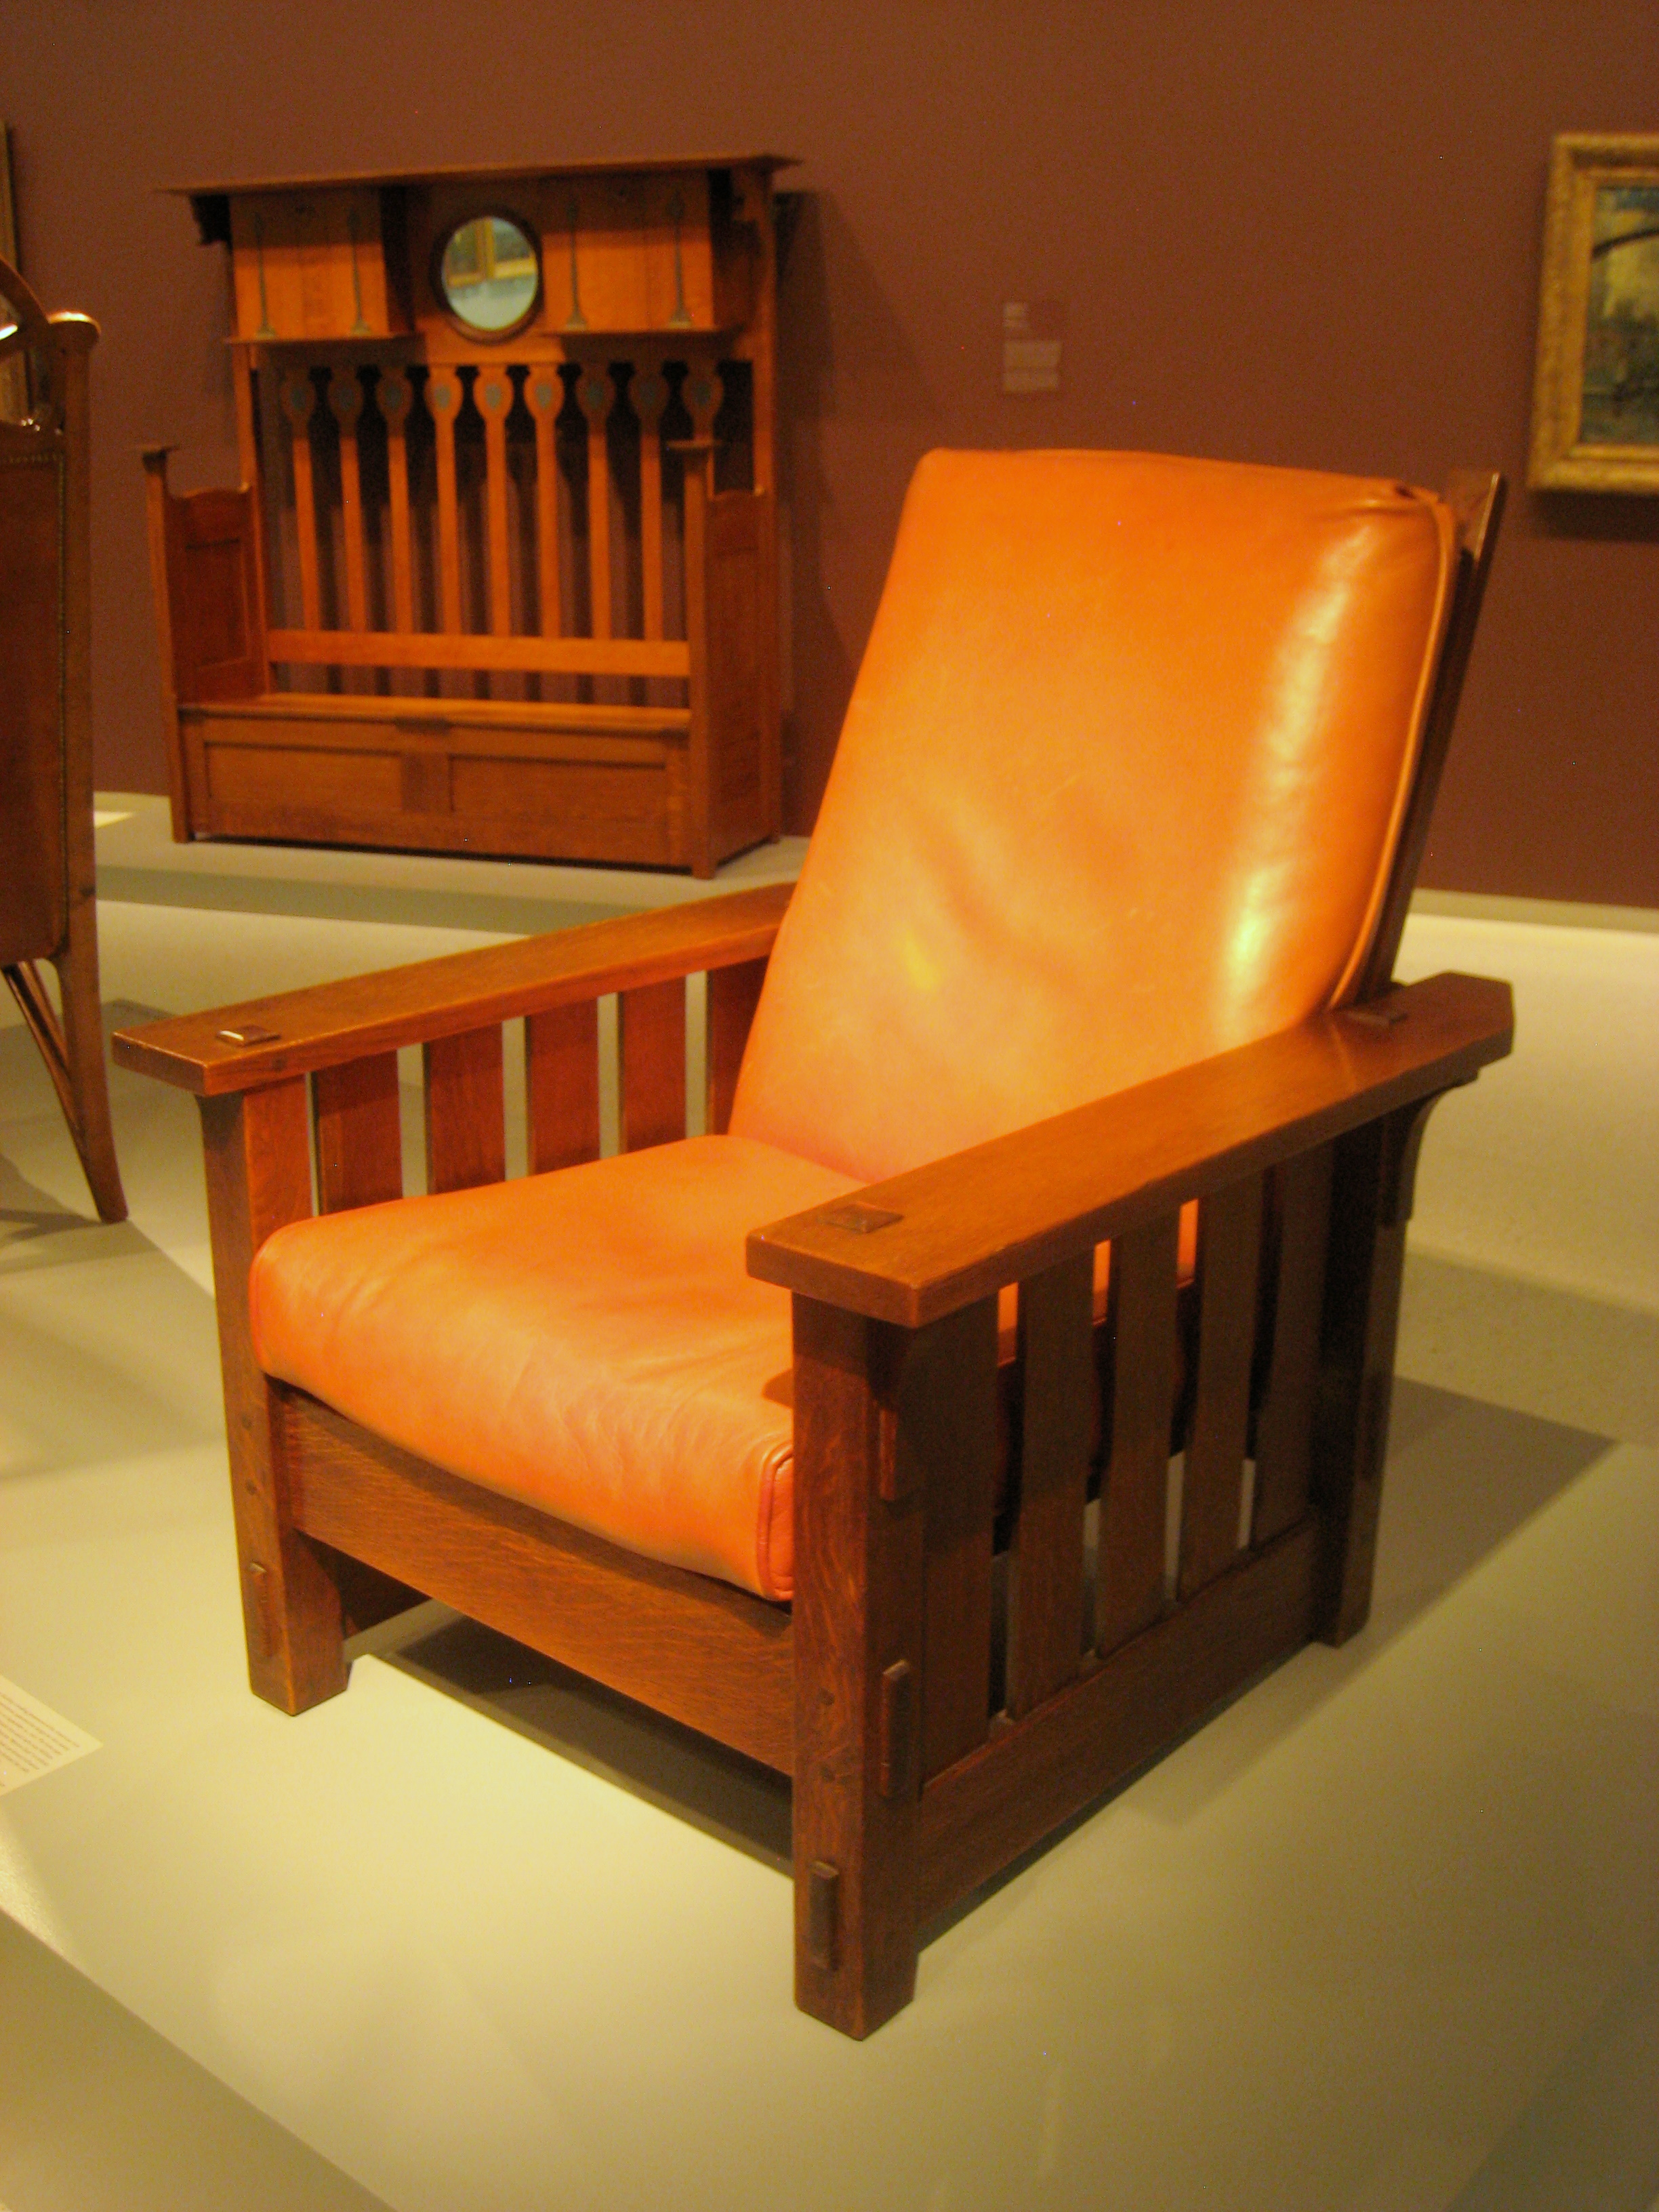 Gentil File:Adjustable Back Chair No. 2342, Gustav Stickley, 1900 1904